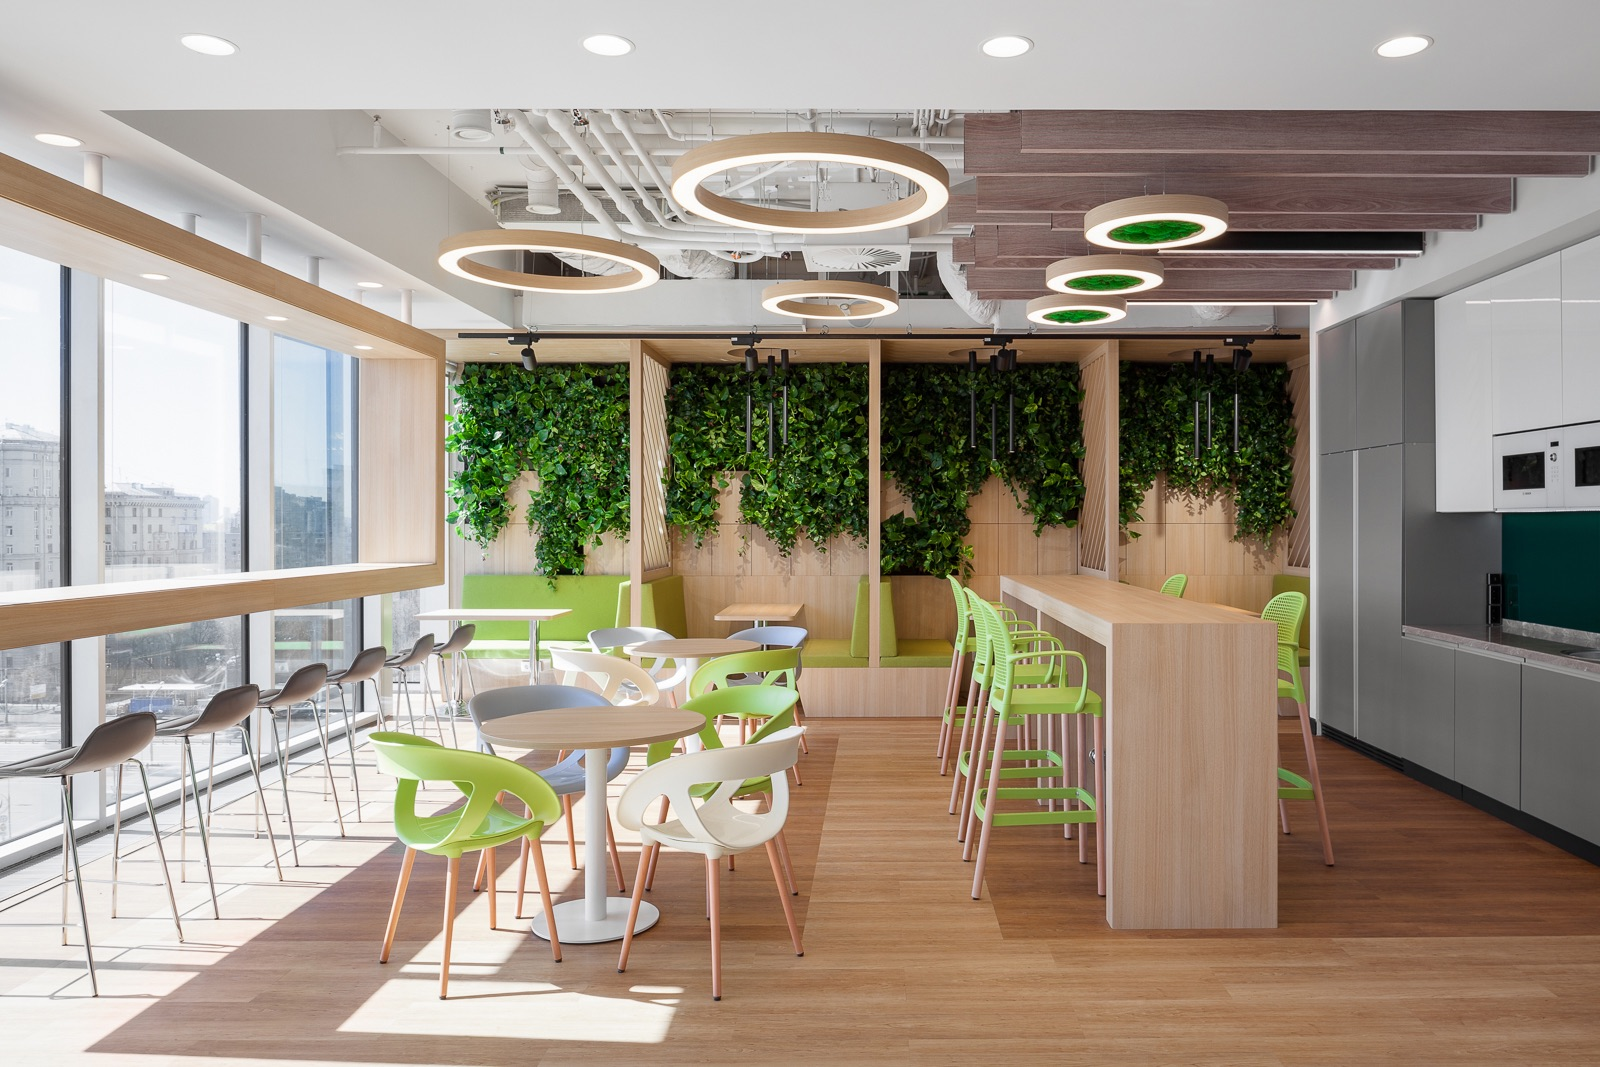 otp-bank-moscow-office-21